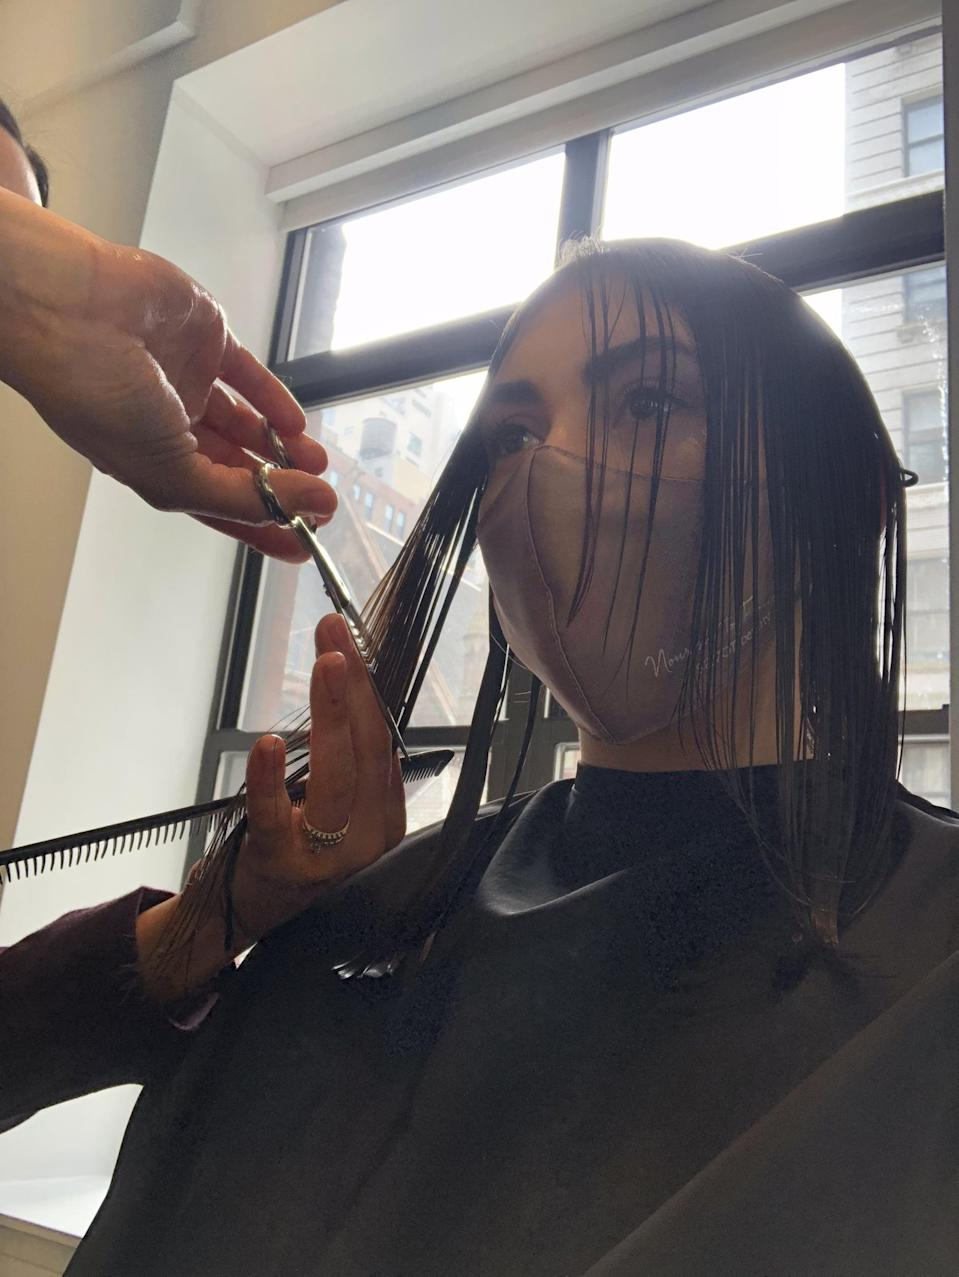 """<p>I wanted to keep most of the length so Santos only trimmed it about an inch to get rid of dead ends before adding long layers to the back of my head. Then it was time to cut the face-framing pieces. With my <a href=""""https://www.popsugar.com/beauty/middle-hair-part-editor-experiment-48192021"""" class=""""link rapid-noclick-resp"""" rel=""""nofollow noopener"""" target=""""_blank"""" data-ylk=""""slk:hair in a middle part"""">hair in a middle part</a> - because I'm <a href=""""https://www.popsugar.com/beauty/middle-part-side-part-debate-48185478"""" class=""""link rapid-noclick-resp"""" rel=""""nofollow noopener"""" target=""""_blank"""" data-ylk=""""slk:a cool Gen Zer"""">a cool Gen Zer</a>, if you couldn't tell - she cut the hair on either side of my face using a downward angle. The shortest pieces hit right at my cheekbones and gradually faded into the rest of my hair. She said the hairstyle was """"easy to manage and style,"""" which was music to my ears.</p>"""